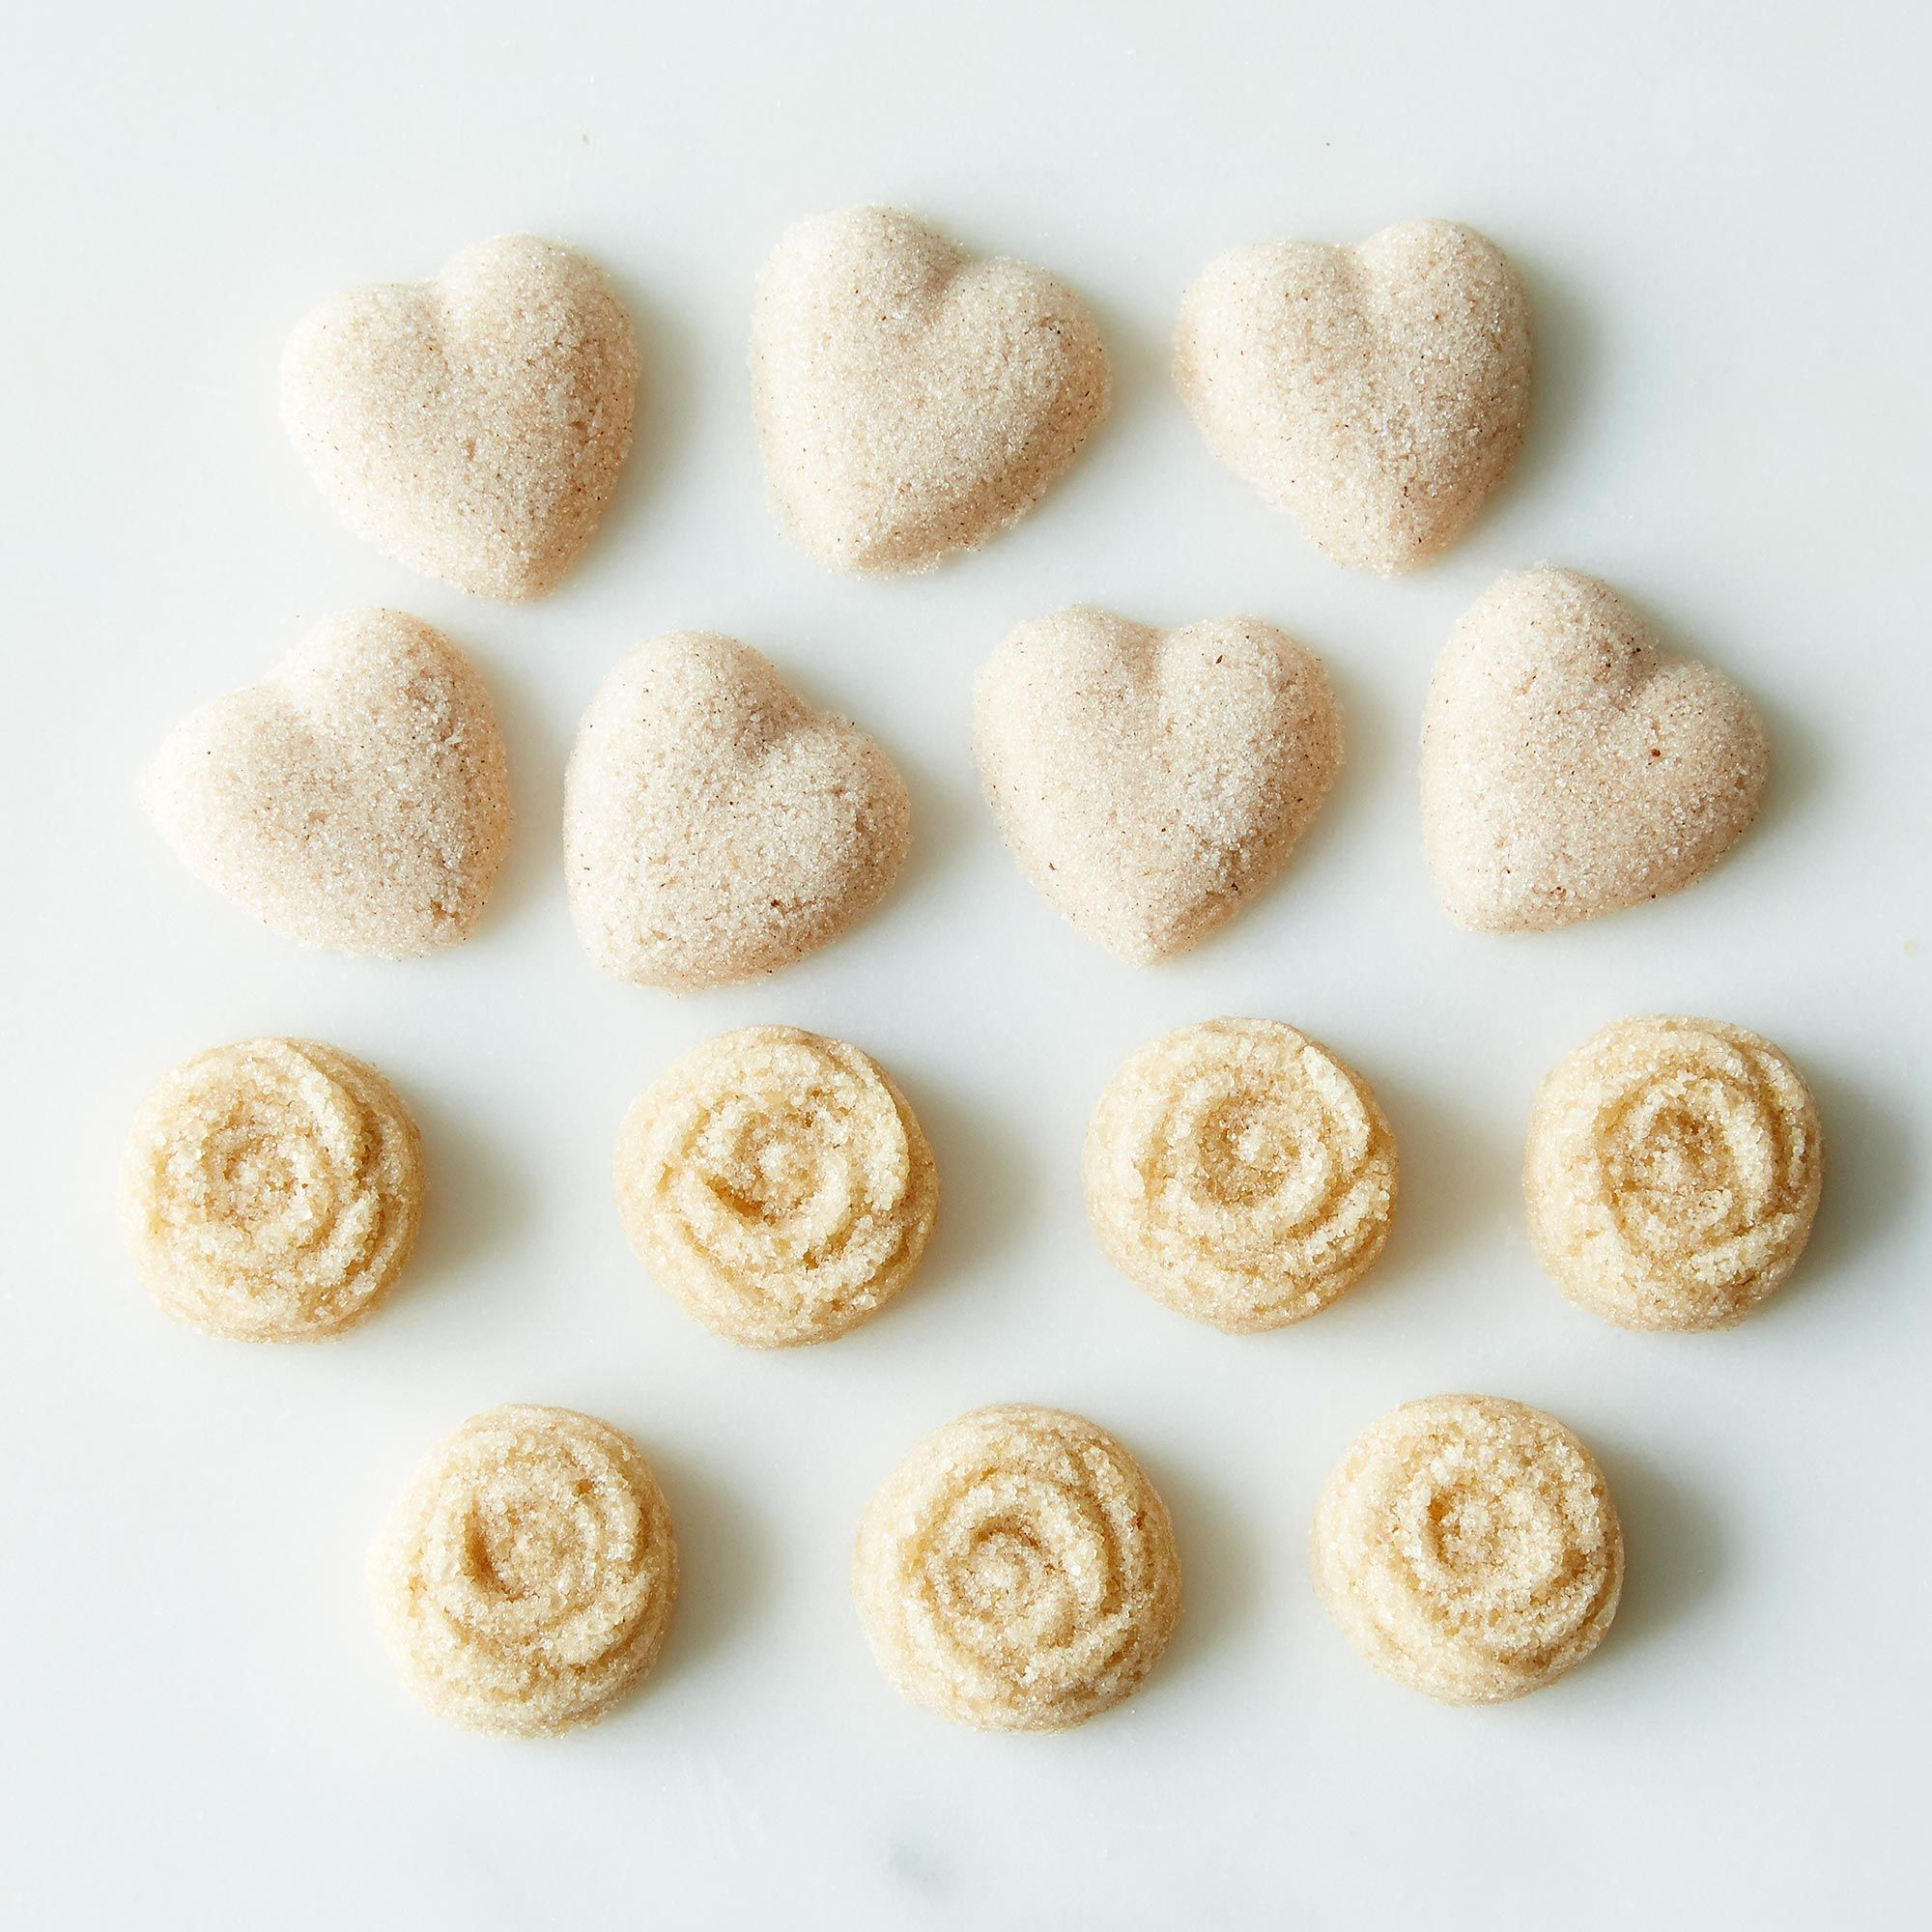 05ed8ef0 a0f6 11e5 a190 0ef7535729df  2014 0323 wishing well raw sugar hearts roses family 007